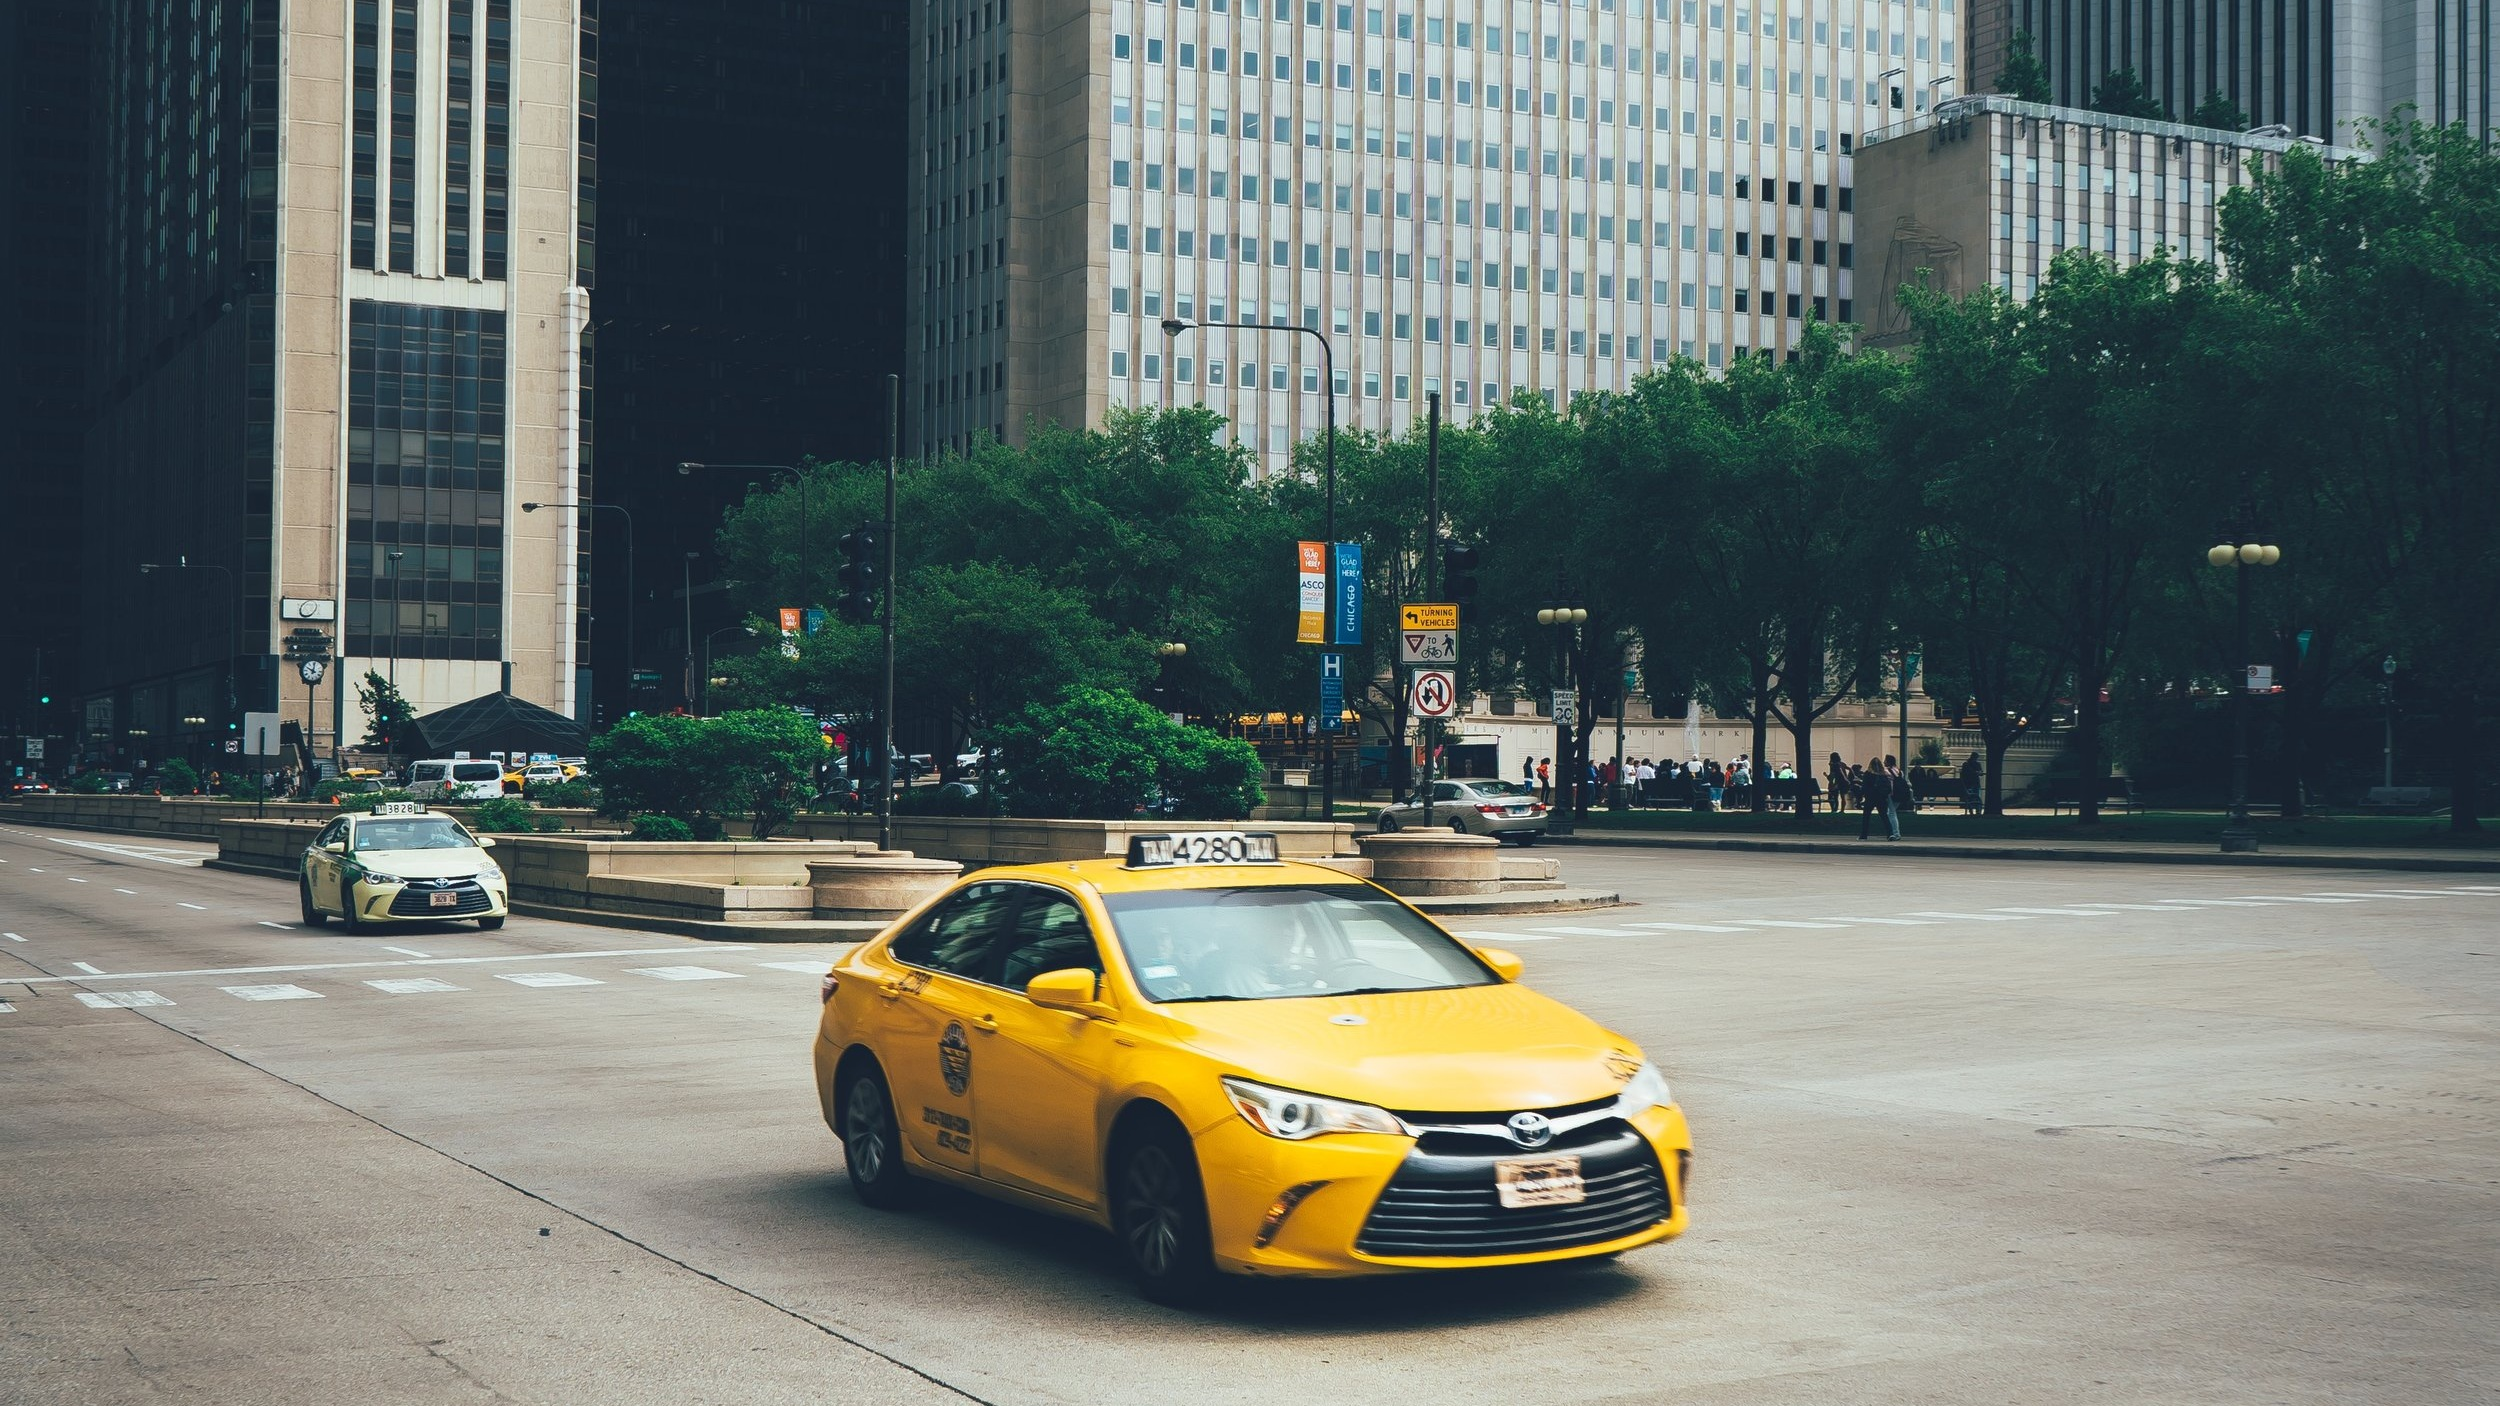 Sometimes grabbing a taxi or rideshare is the more convenient option.